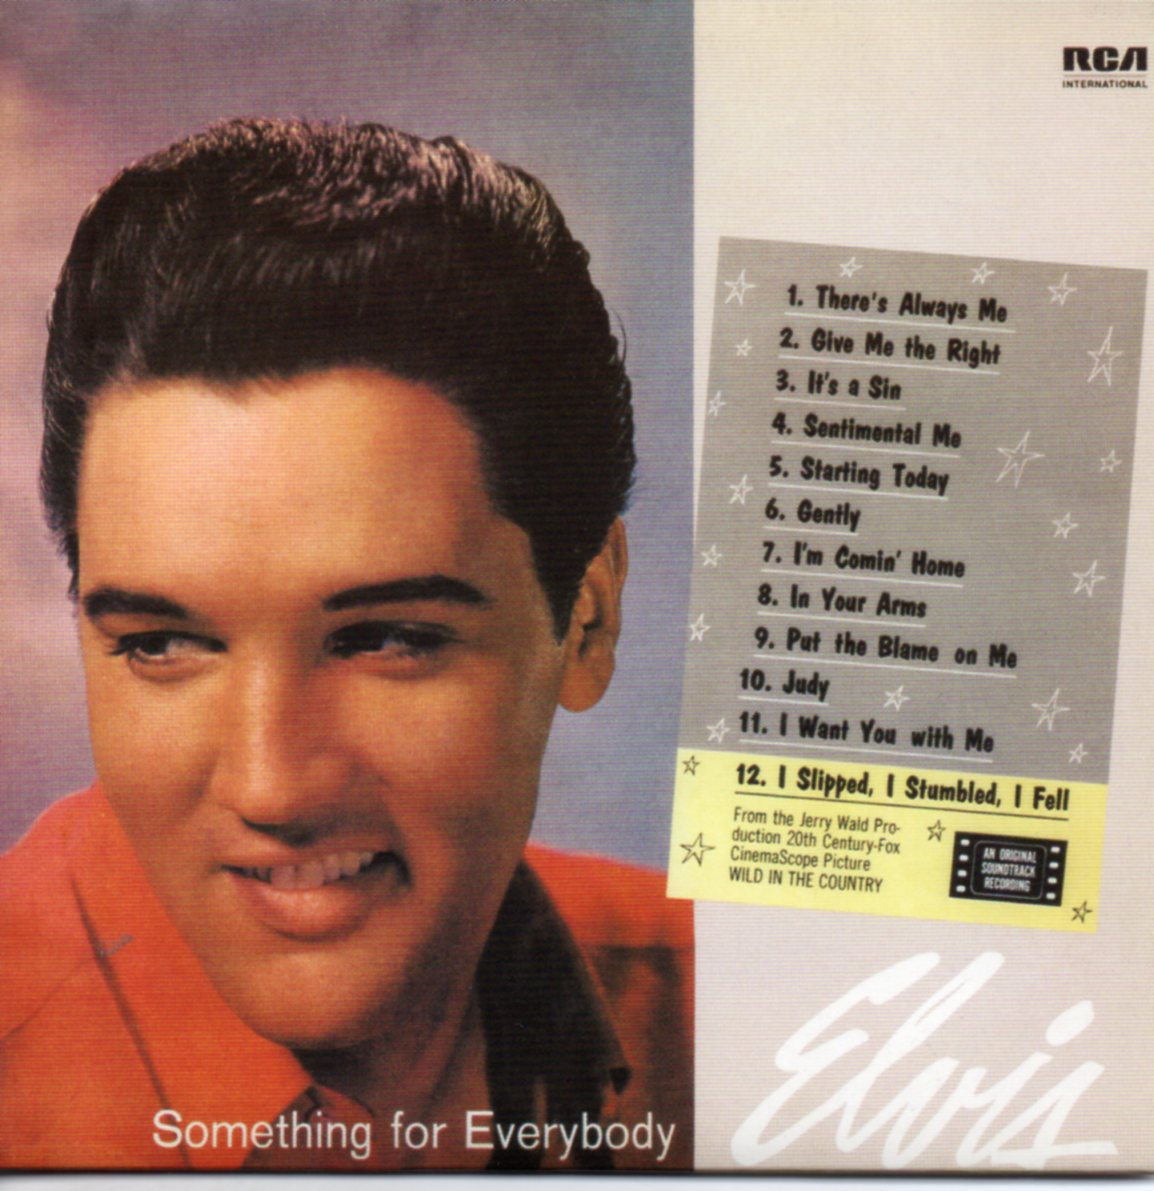 Resultado de imagem para elvis presley something for everybody